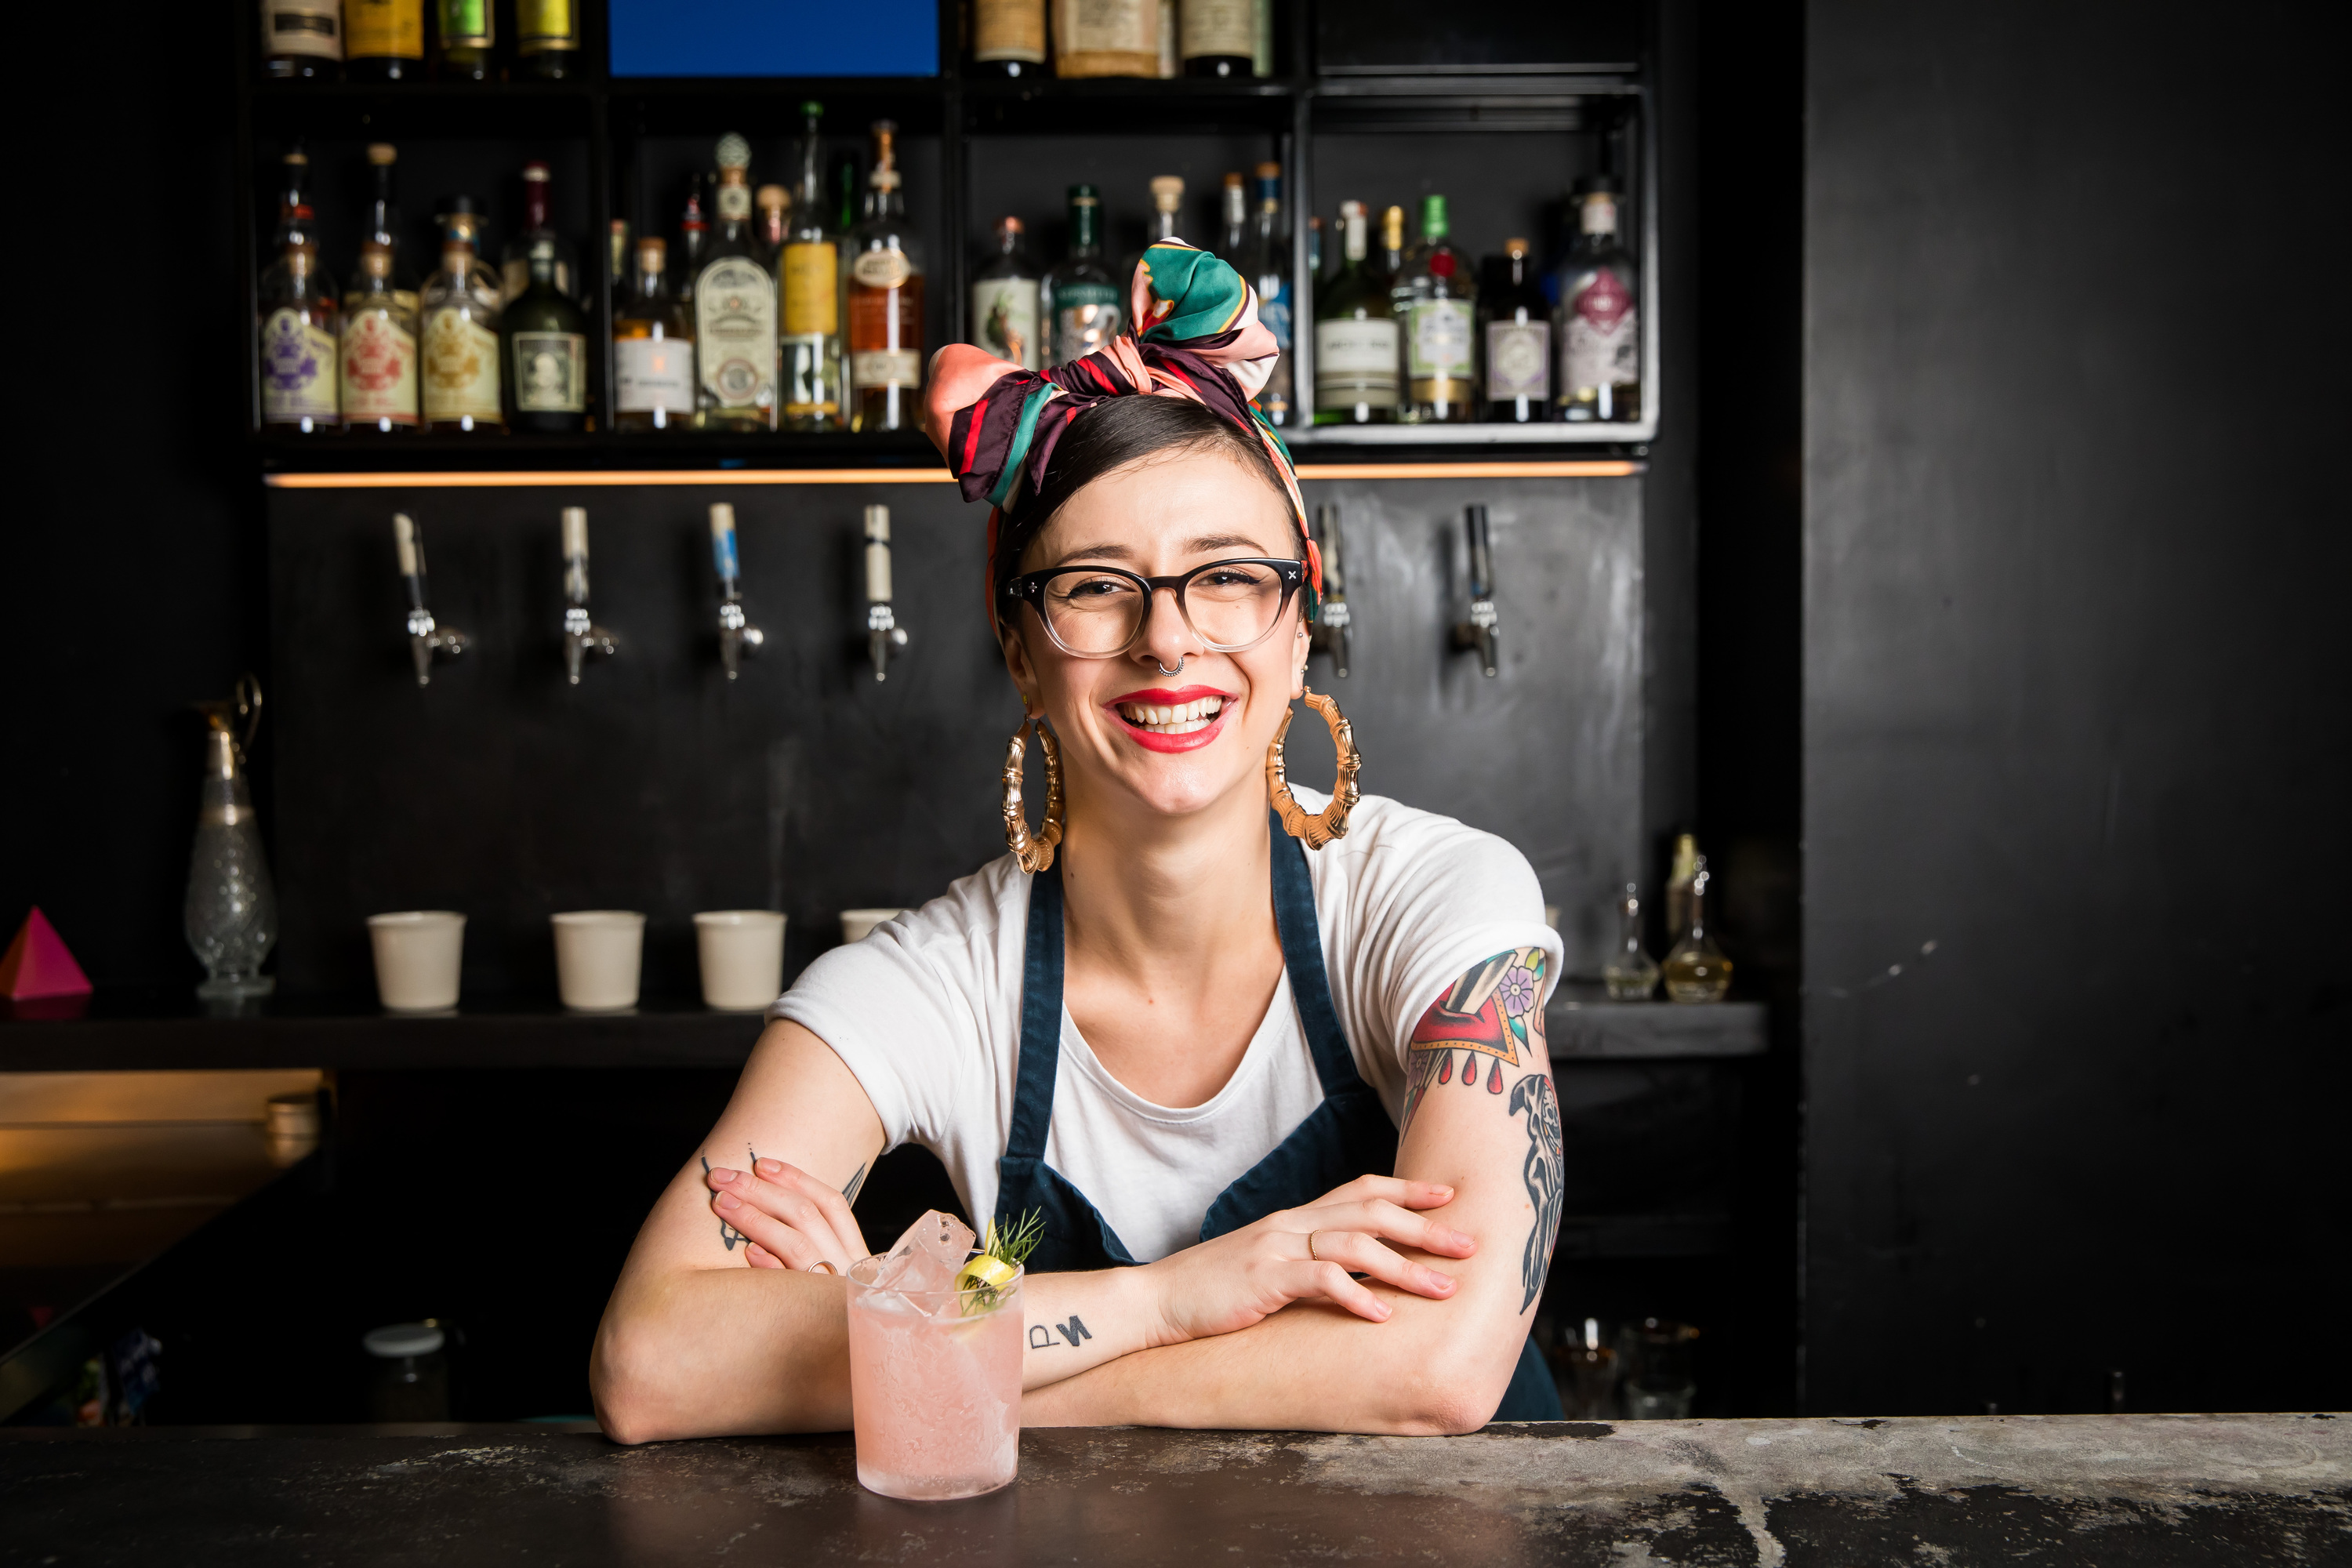 Person smiling behind bar with a cocktail